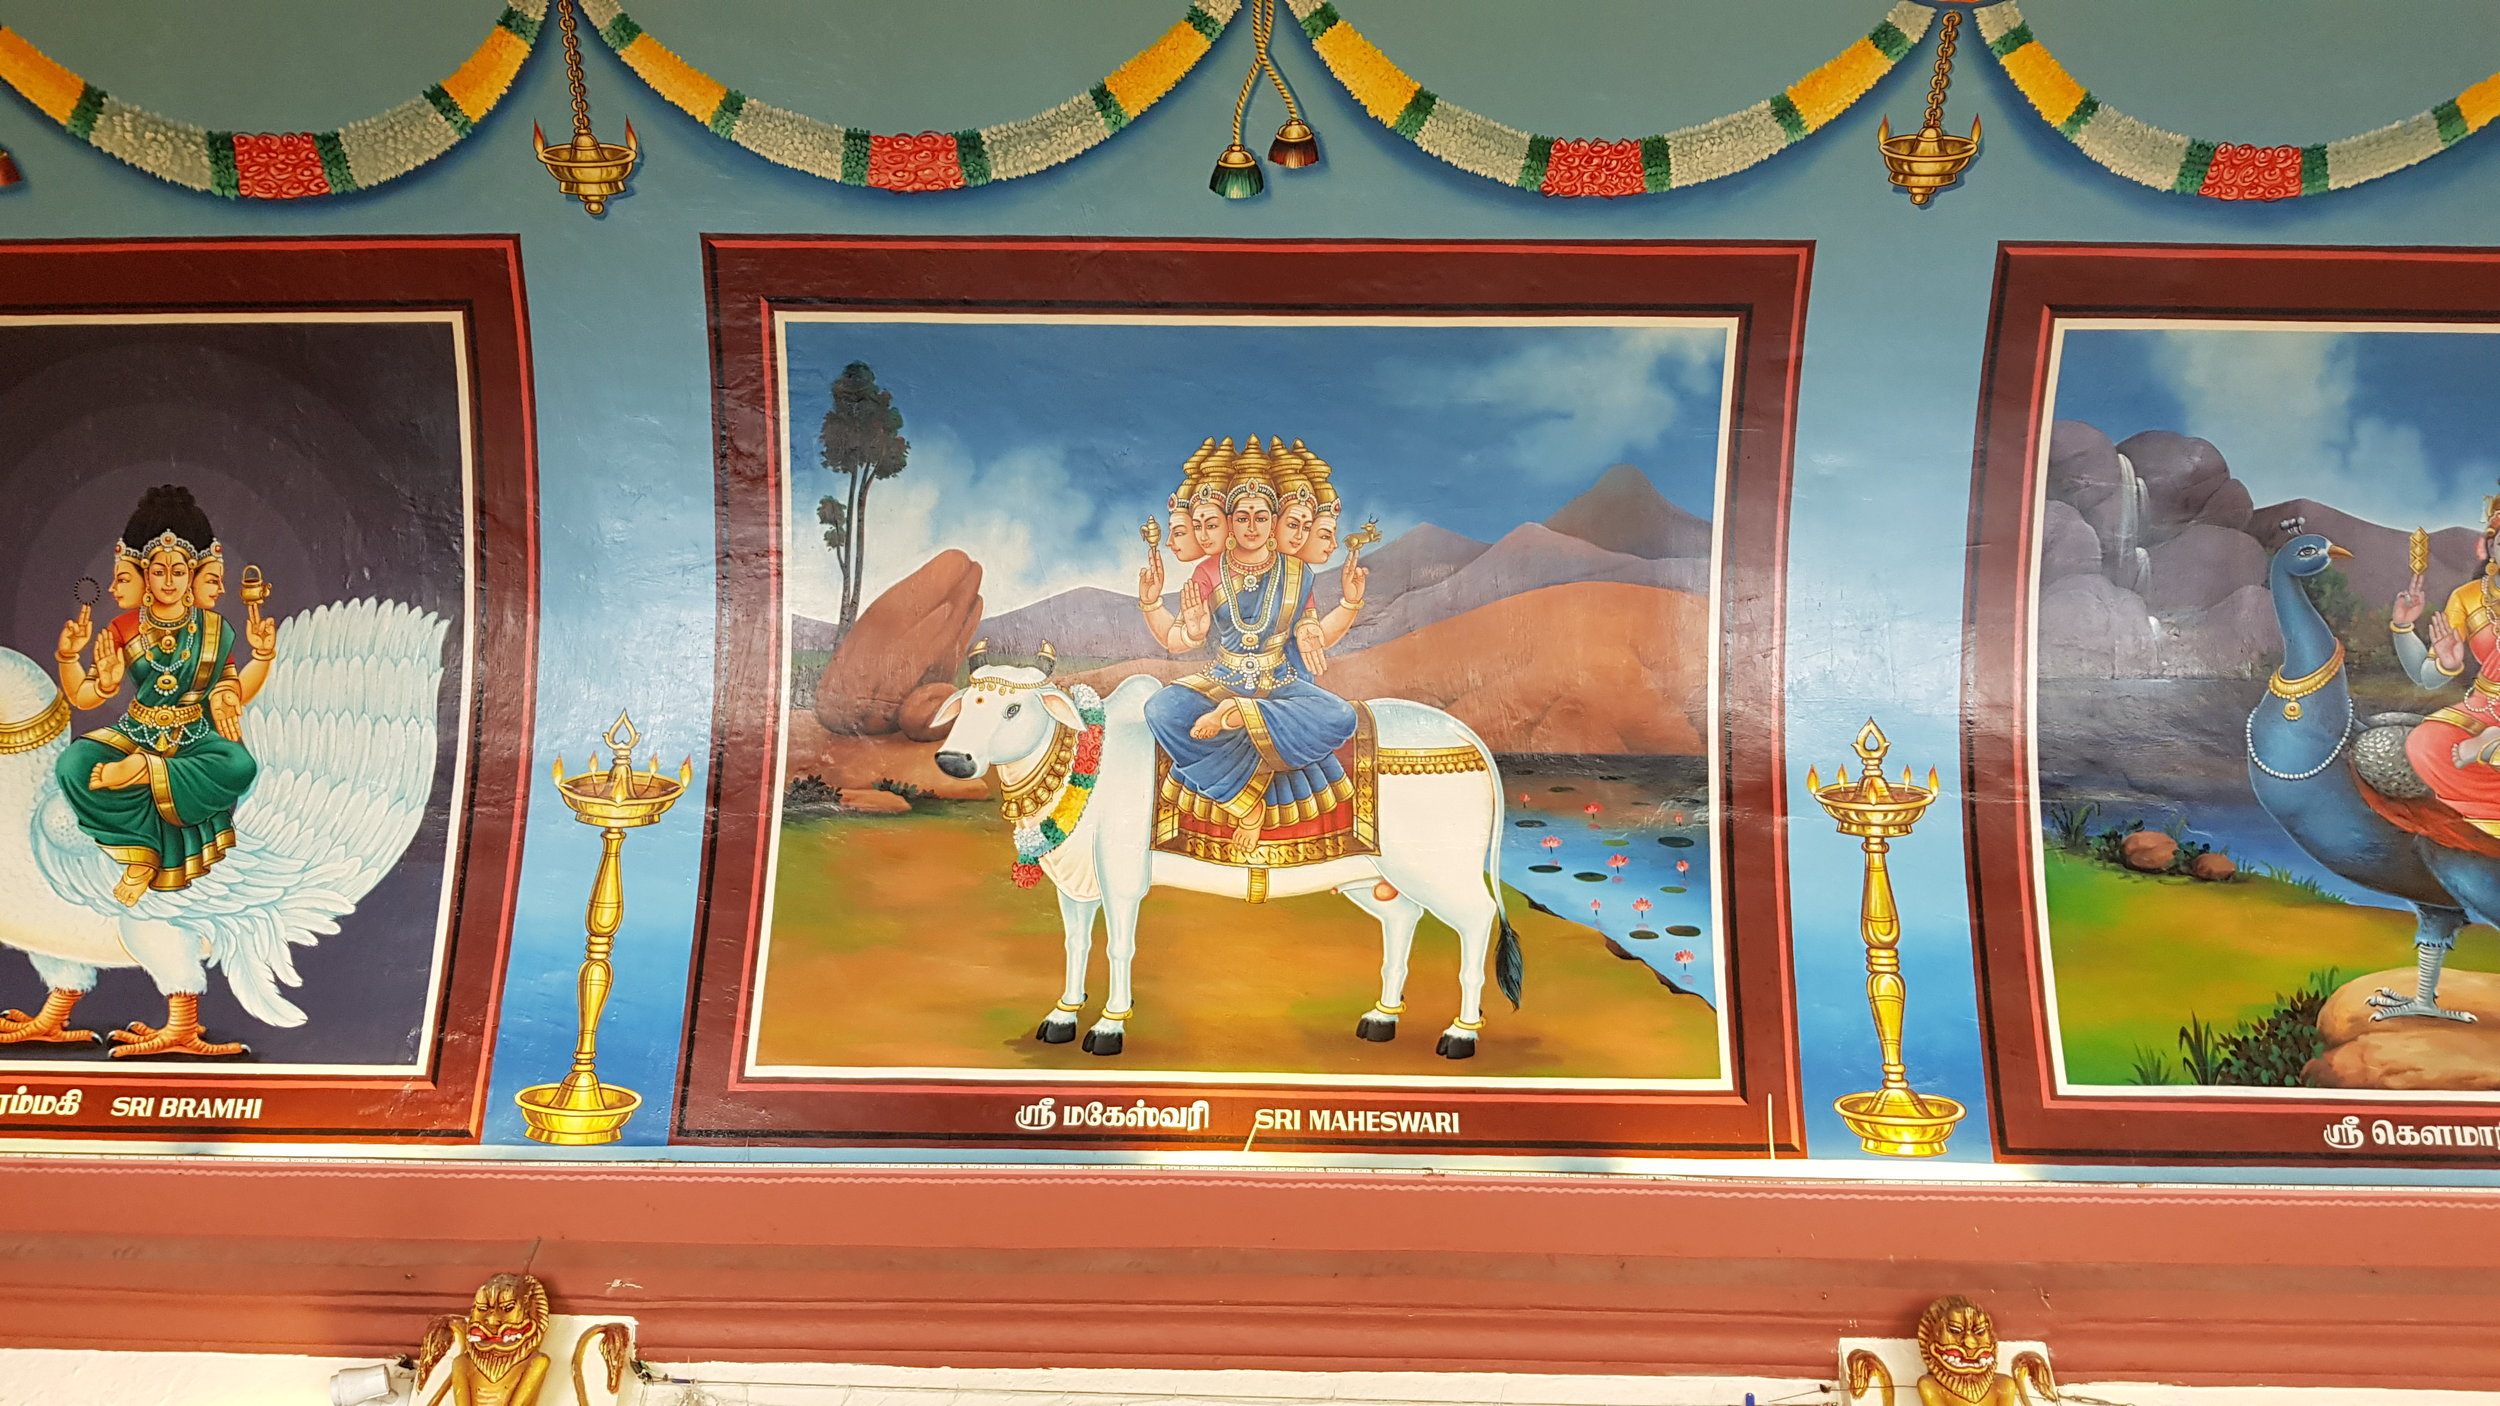 If Sri Maheswari has five heads, can she see everything?